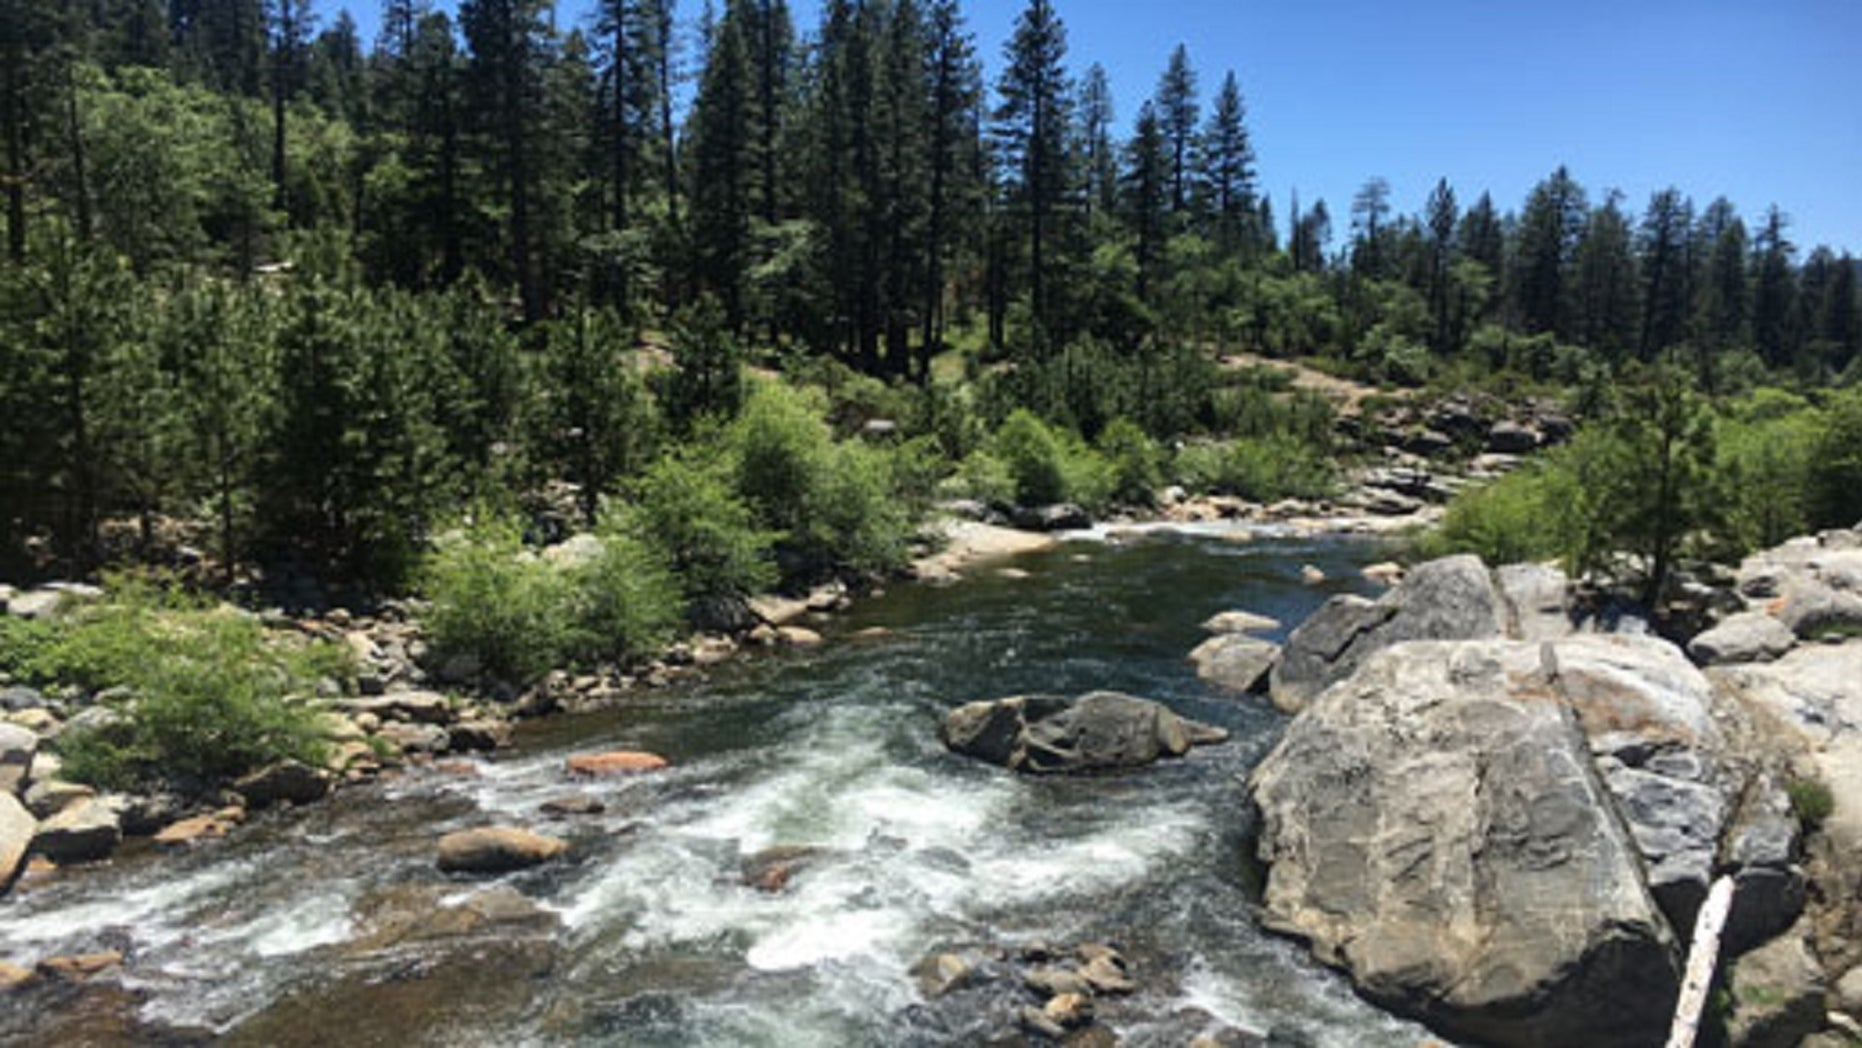 A 5-year-old girl identified as Matilda Ortiz slipped off some rocks and fell into the Stanislaus River in Northern California on Sunday afternoon, officials said.